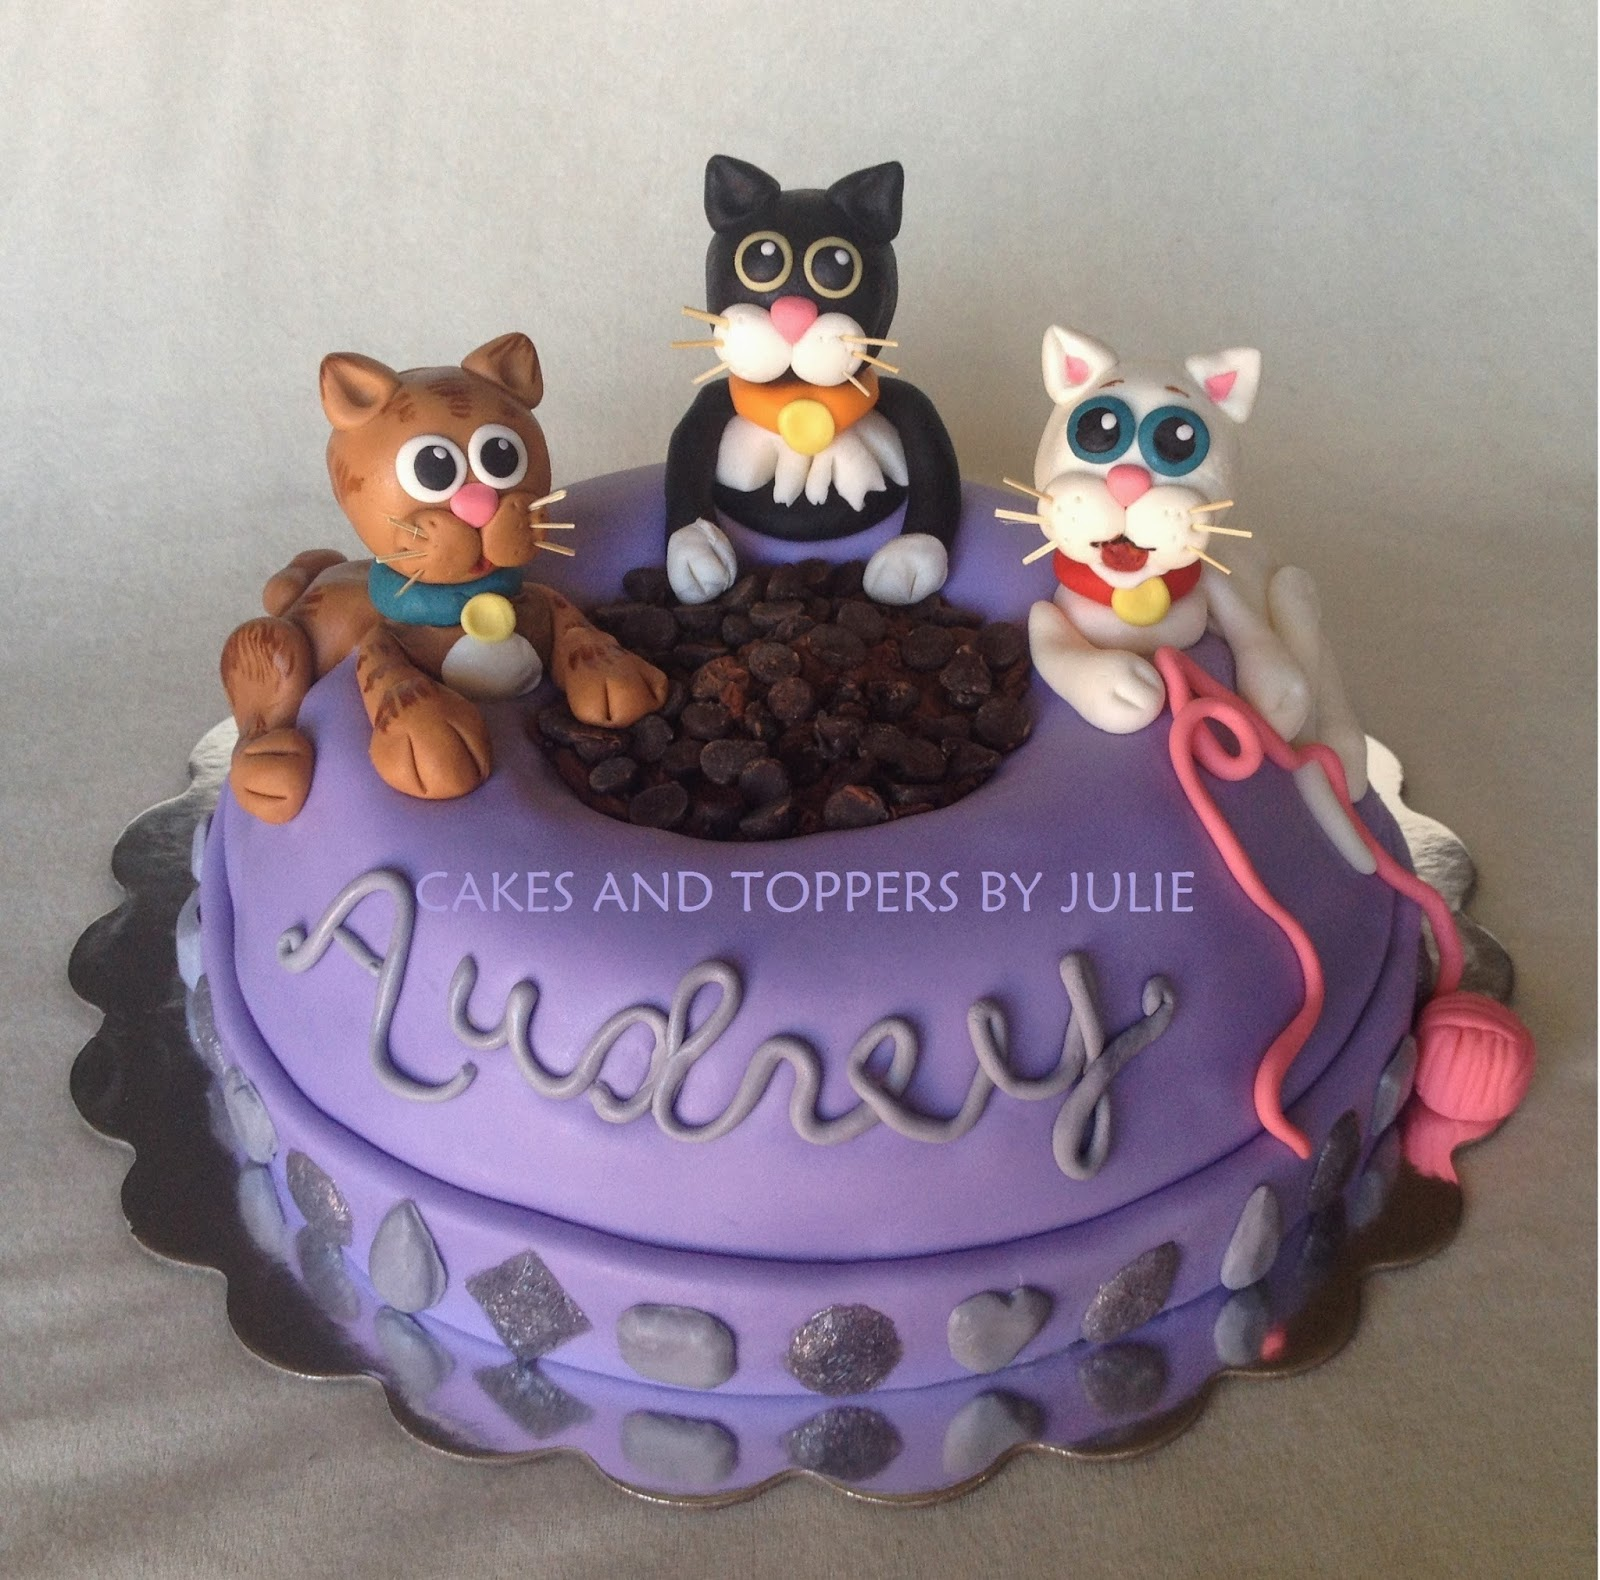 I Recently Had The Joy Of Making My Daughters Birthday Cake She Wanted A Giant Purple Cat Dish With 3 Cats Chocolate Buttercream